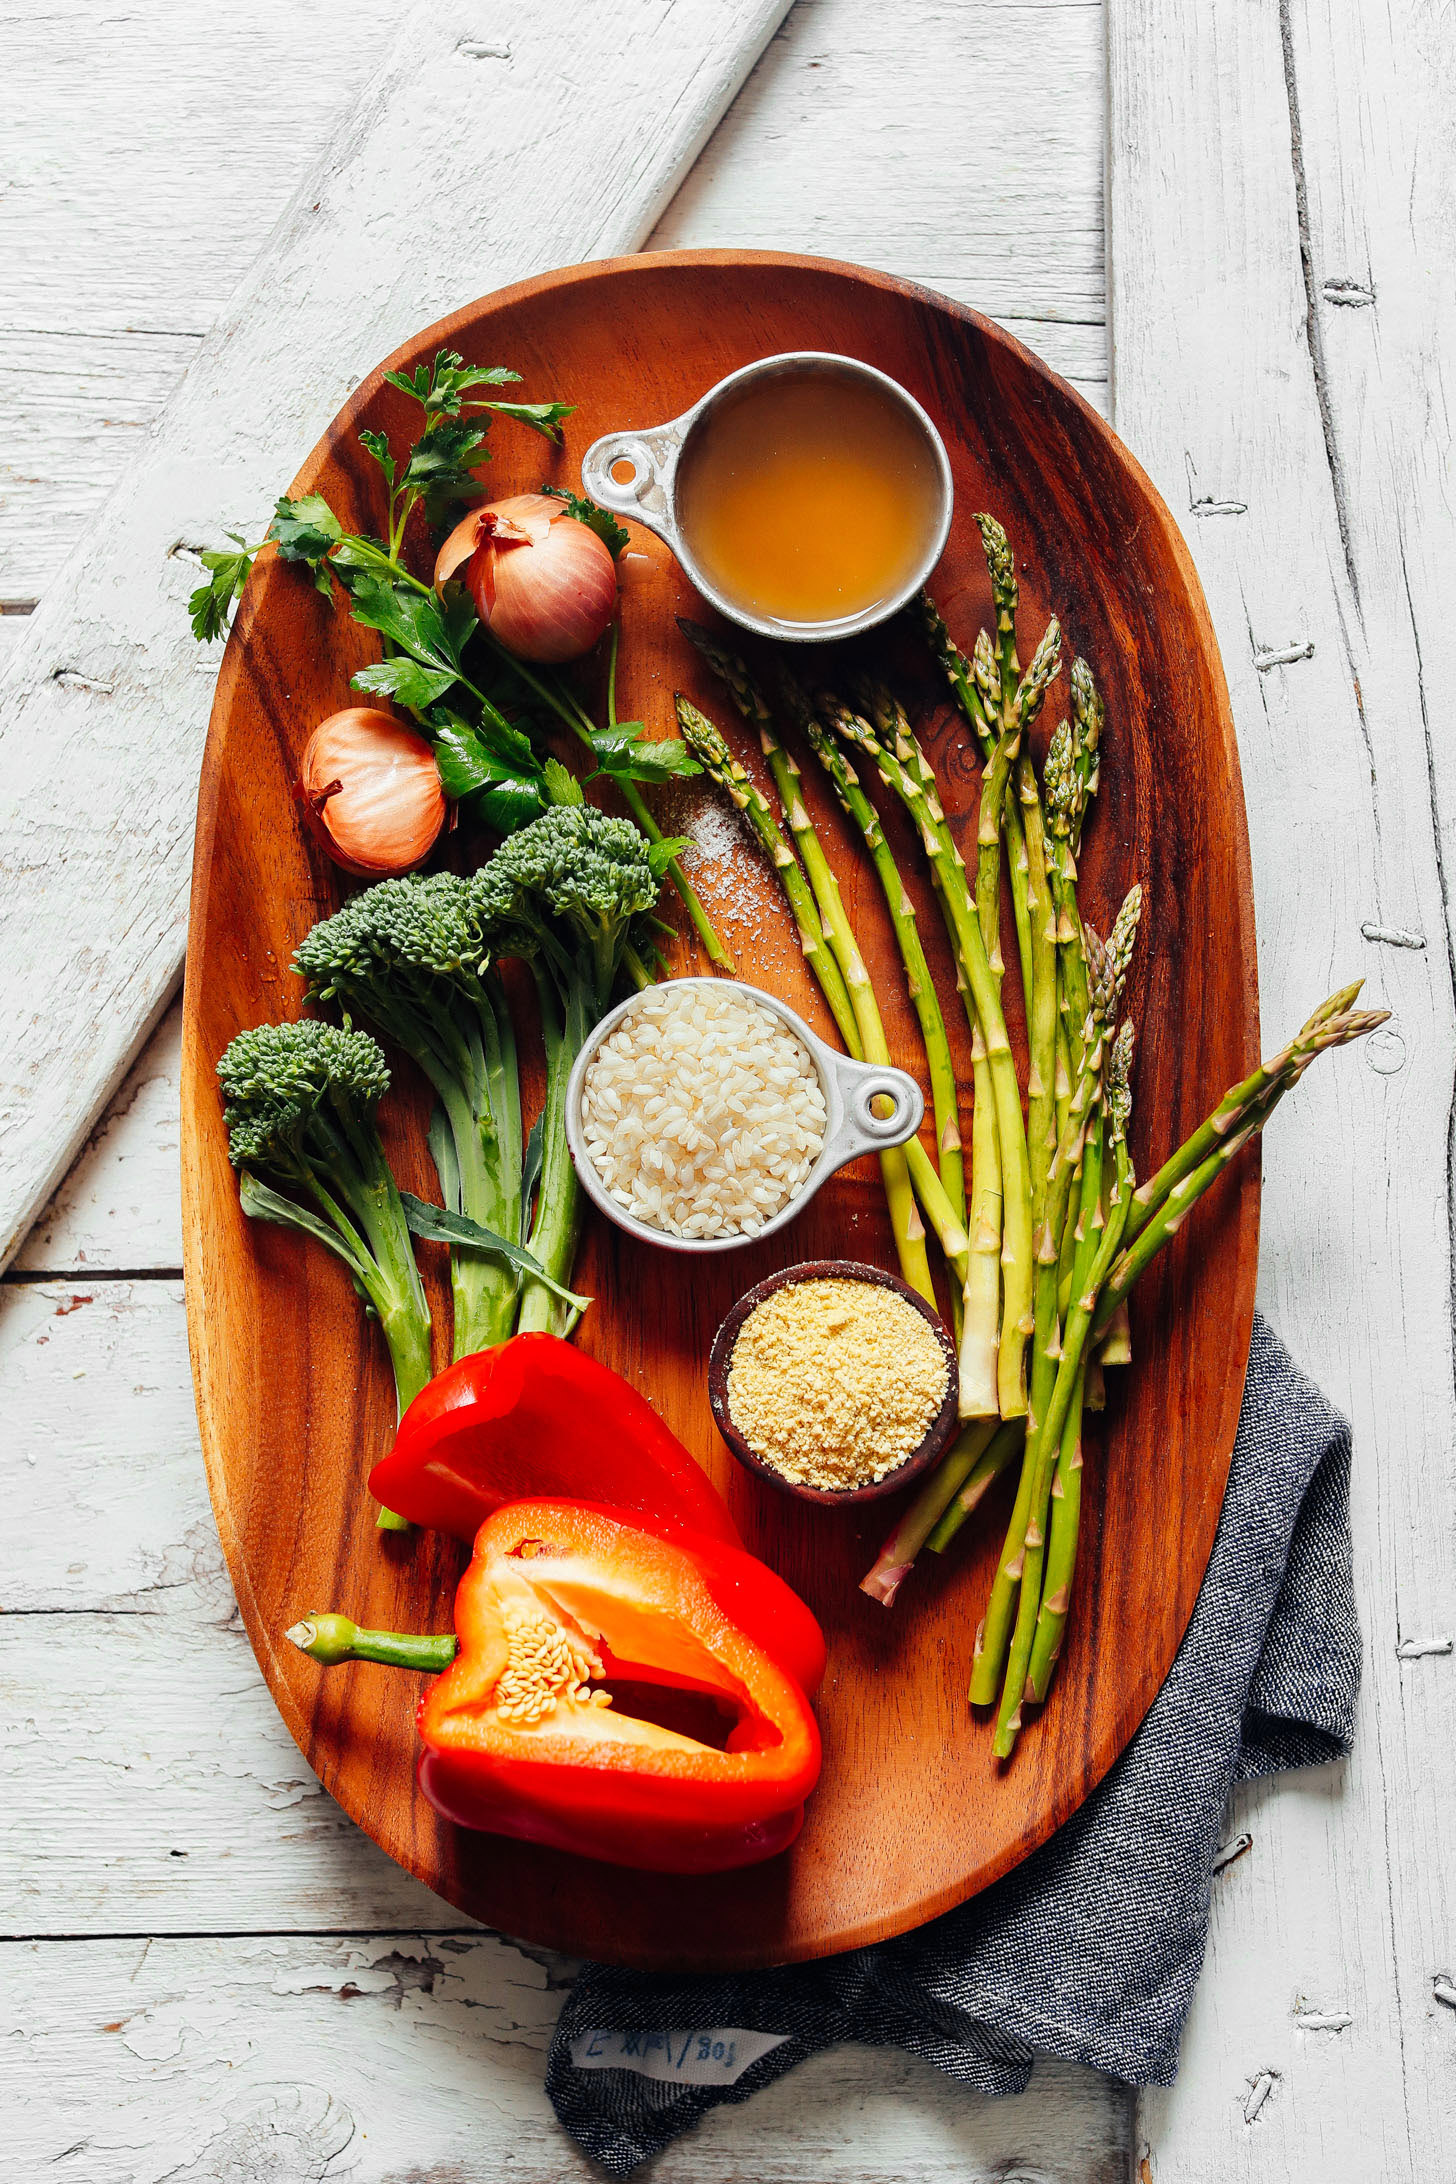 Wood serving platter displaying broccolini, shallots, parsley, red bell pepper, arborio rice, asparagus, vegetable broth, and vegan parmesan for making Creamy Vegetable Risotto